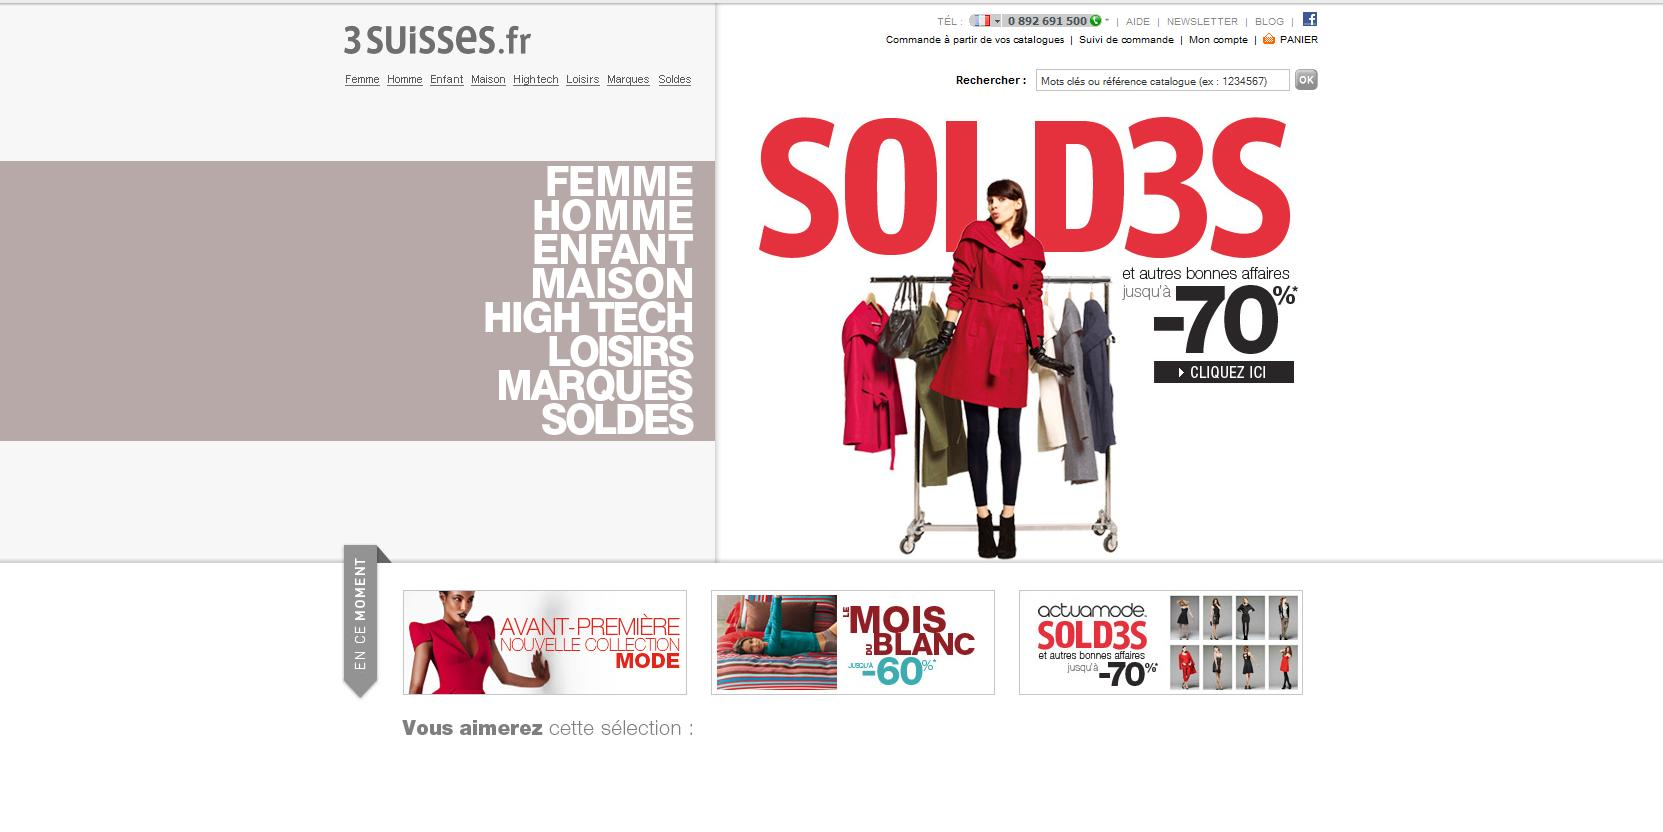 homepage-3suisses-soldes